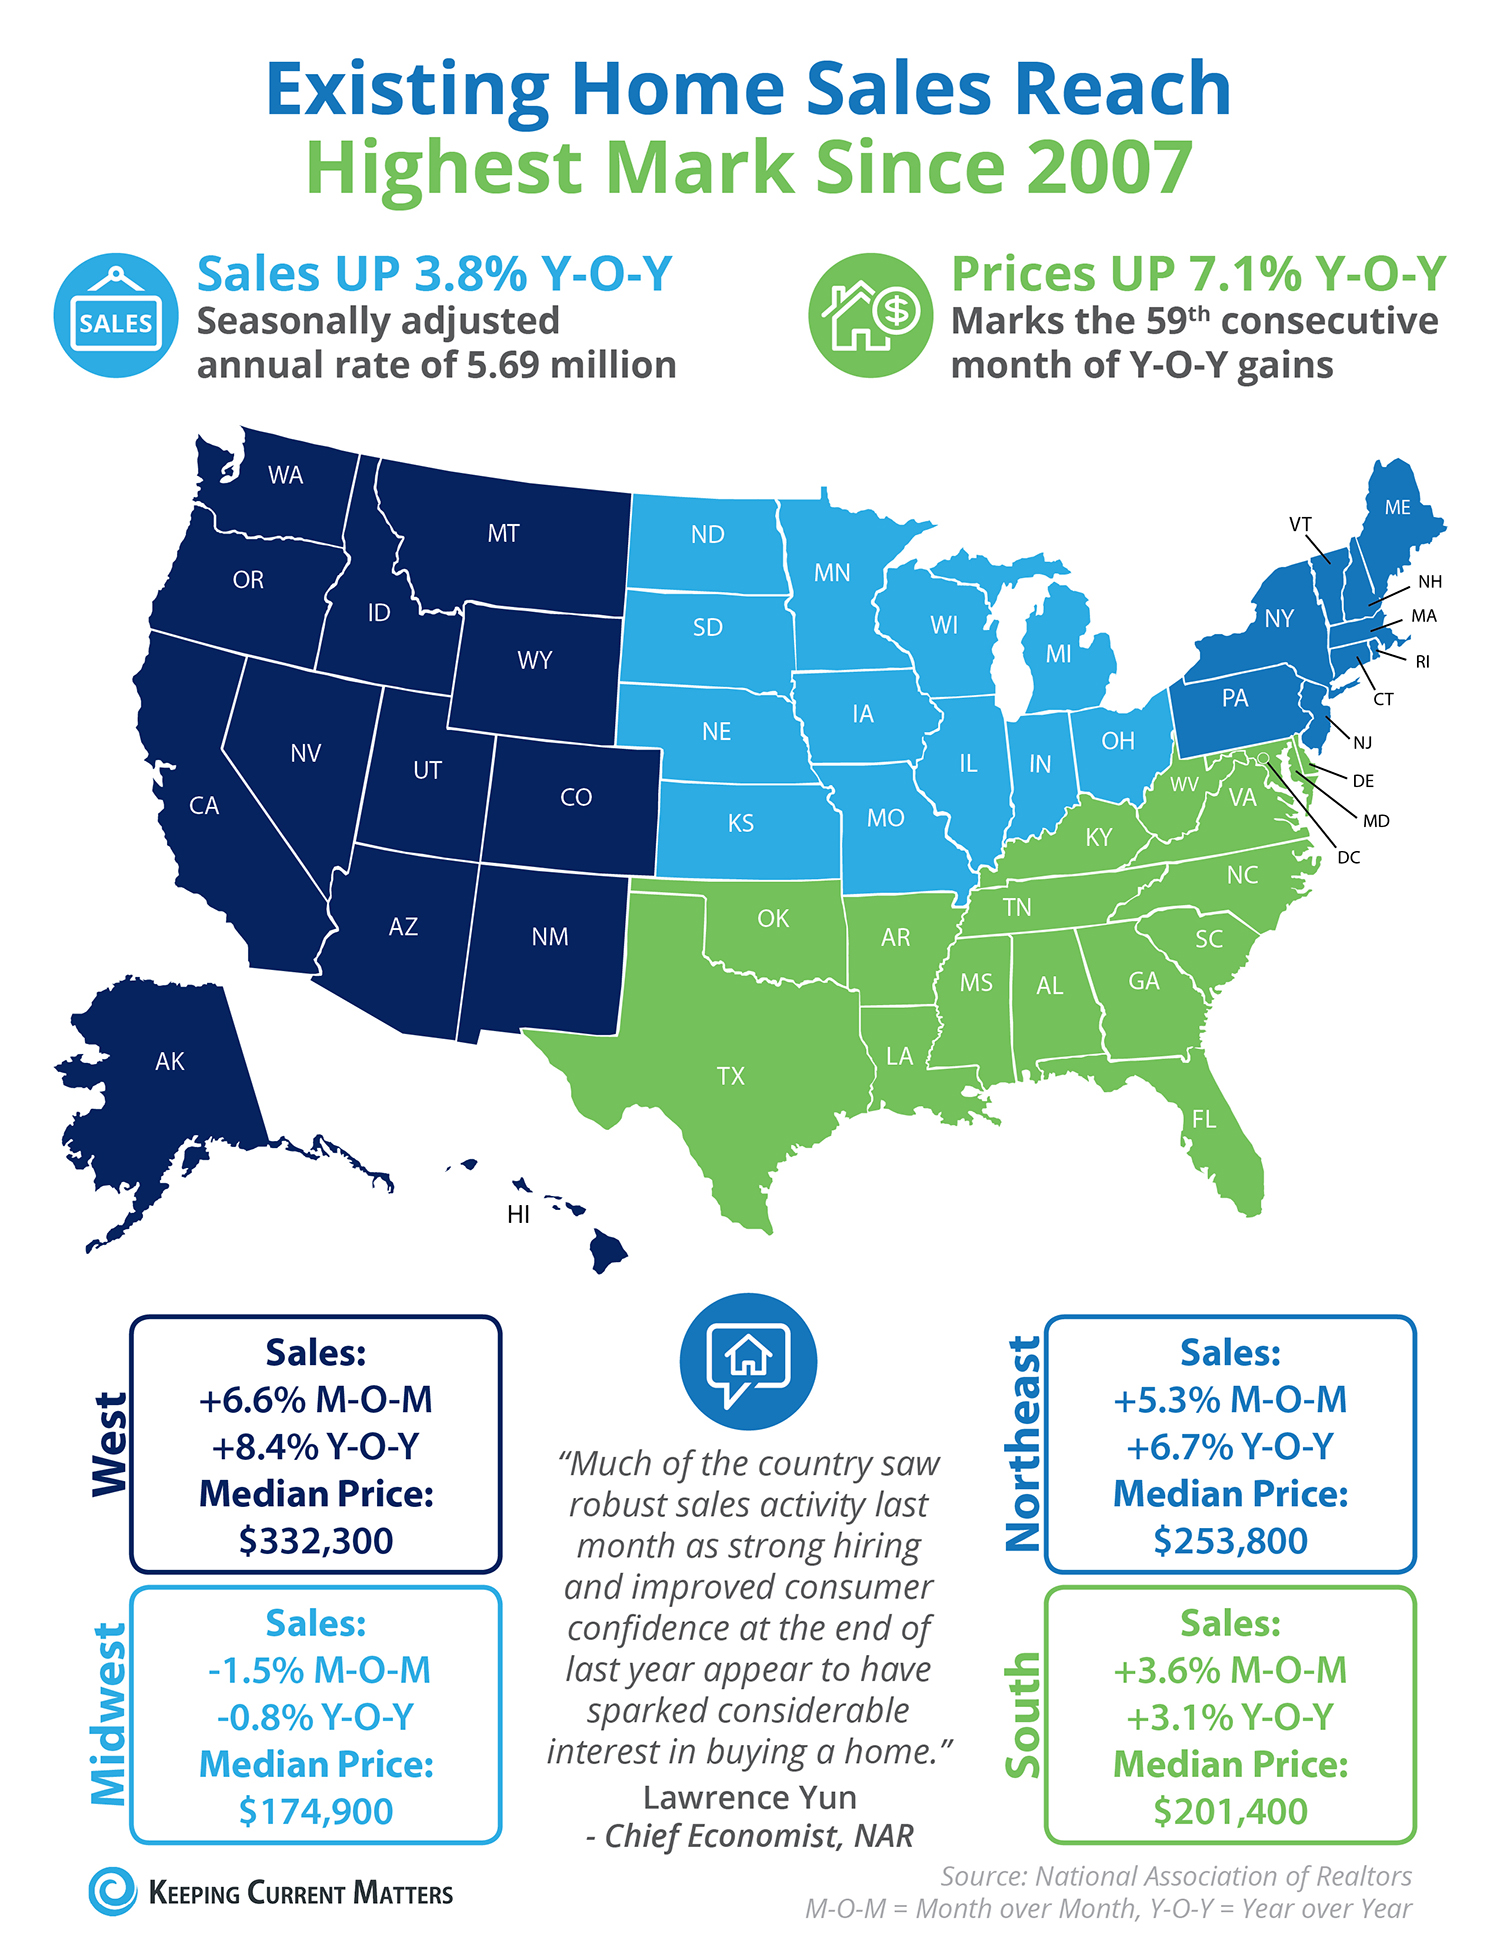 Existing Home Sales Reach Highest Mark Since 2007 [INFOGRAPHIC] | Keeping Current Matters